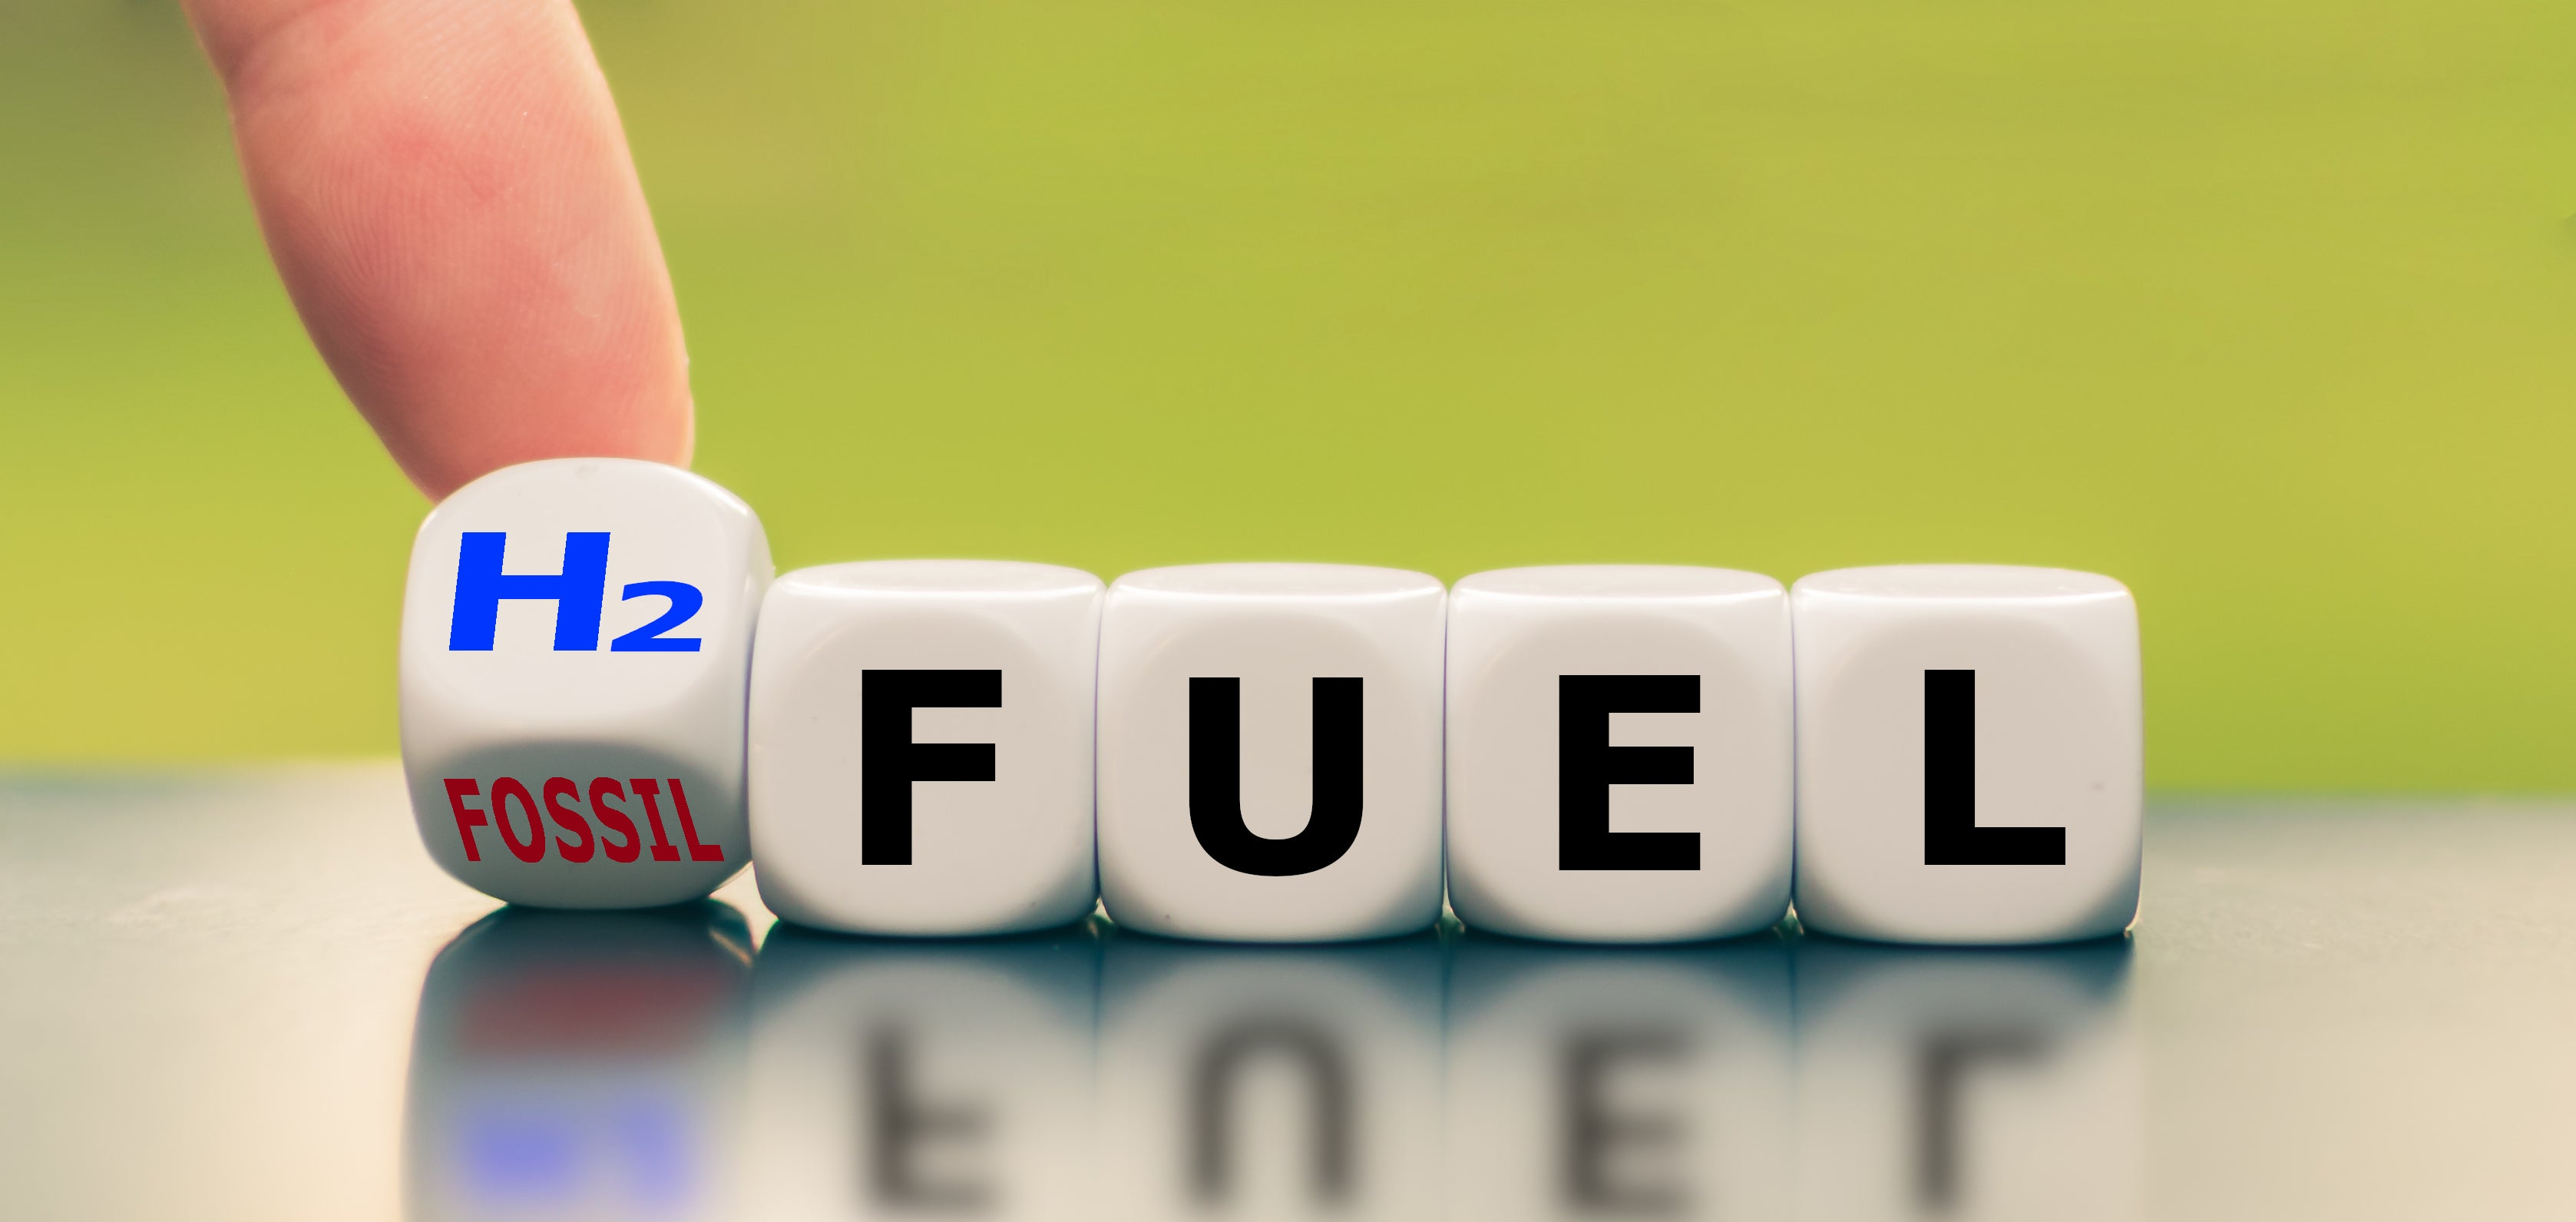 Why Hydrogen Fuel Cell Stocks Popped Today